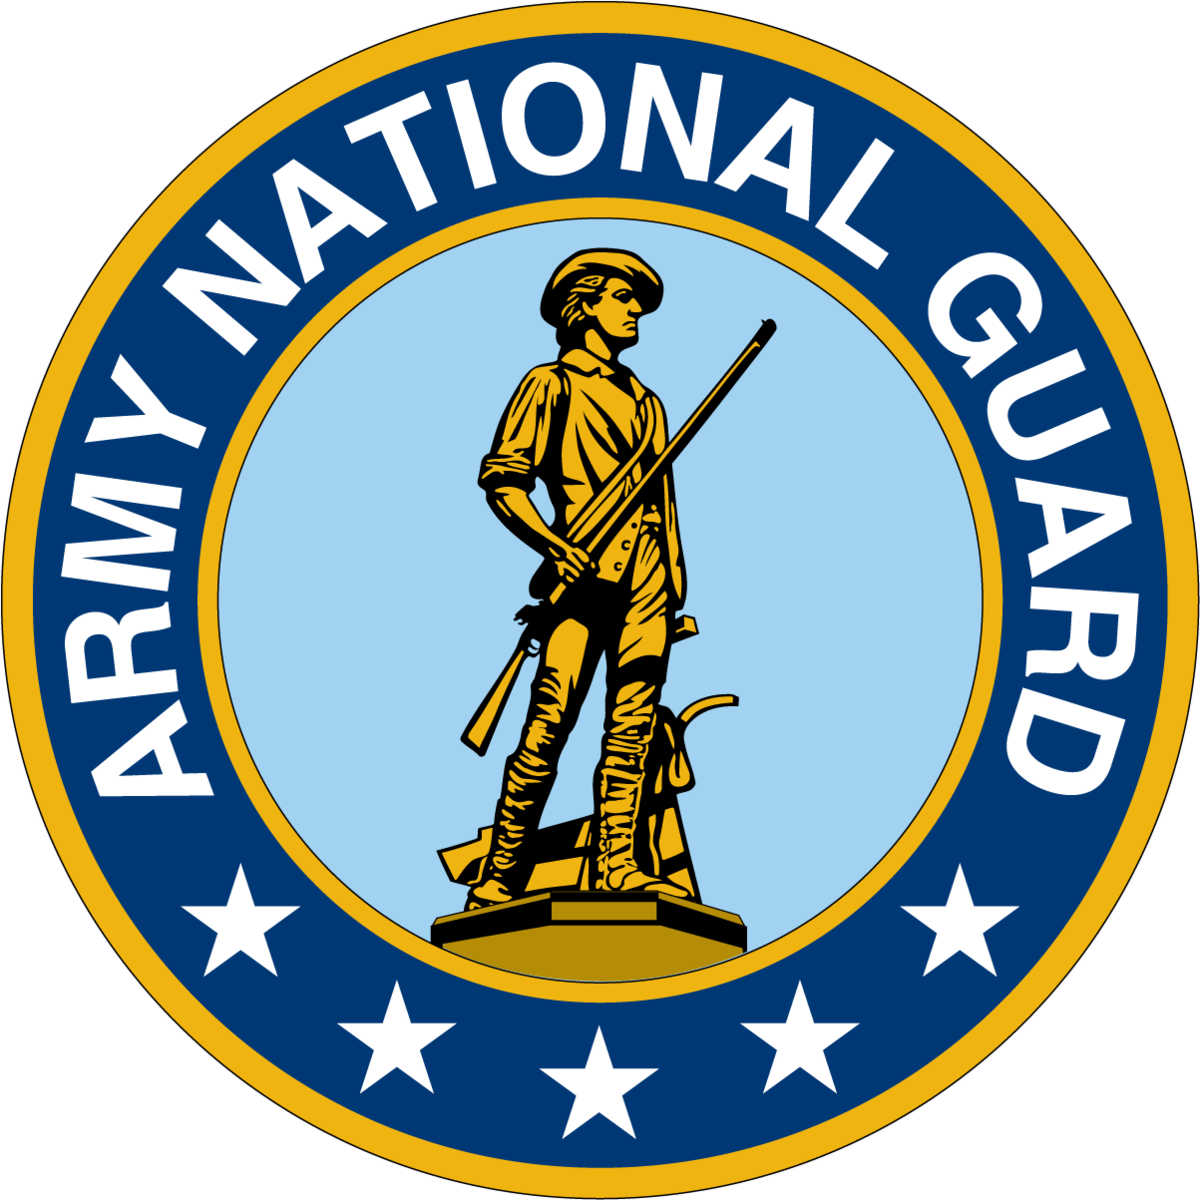 Tennessee Army National Guard.